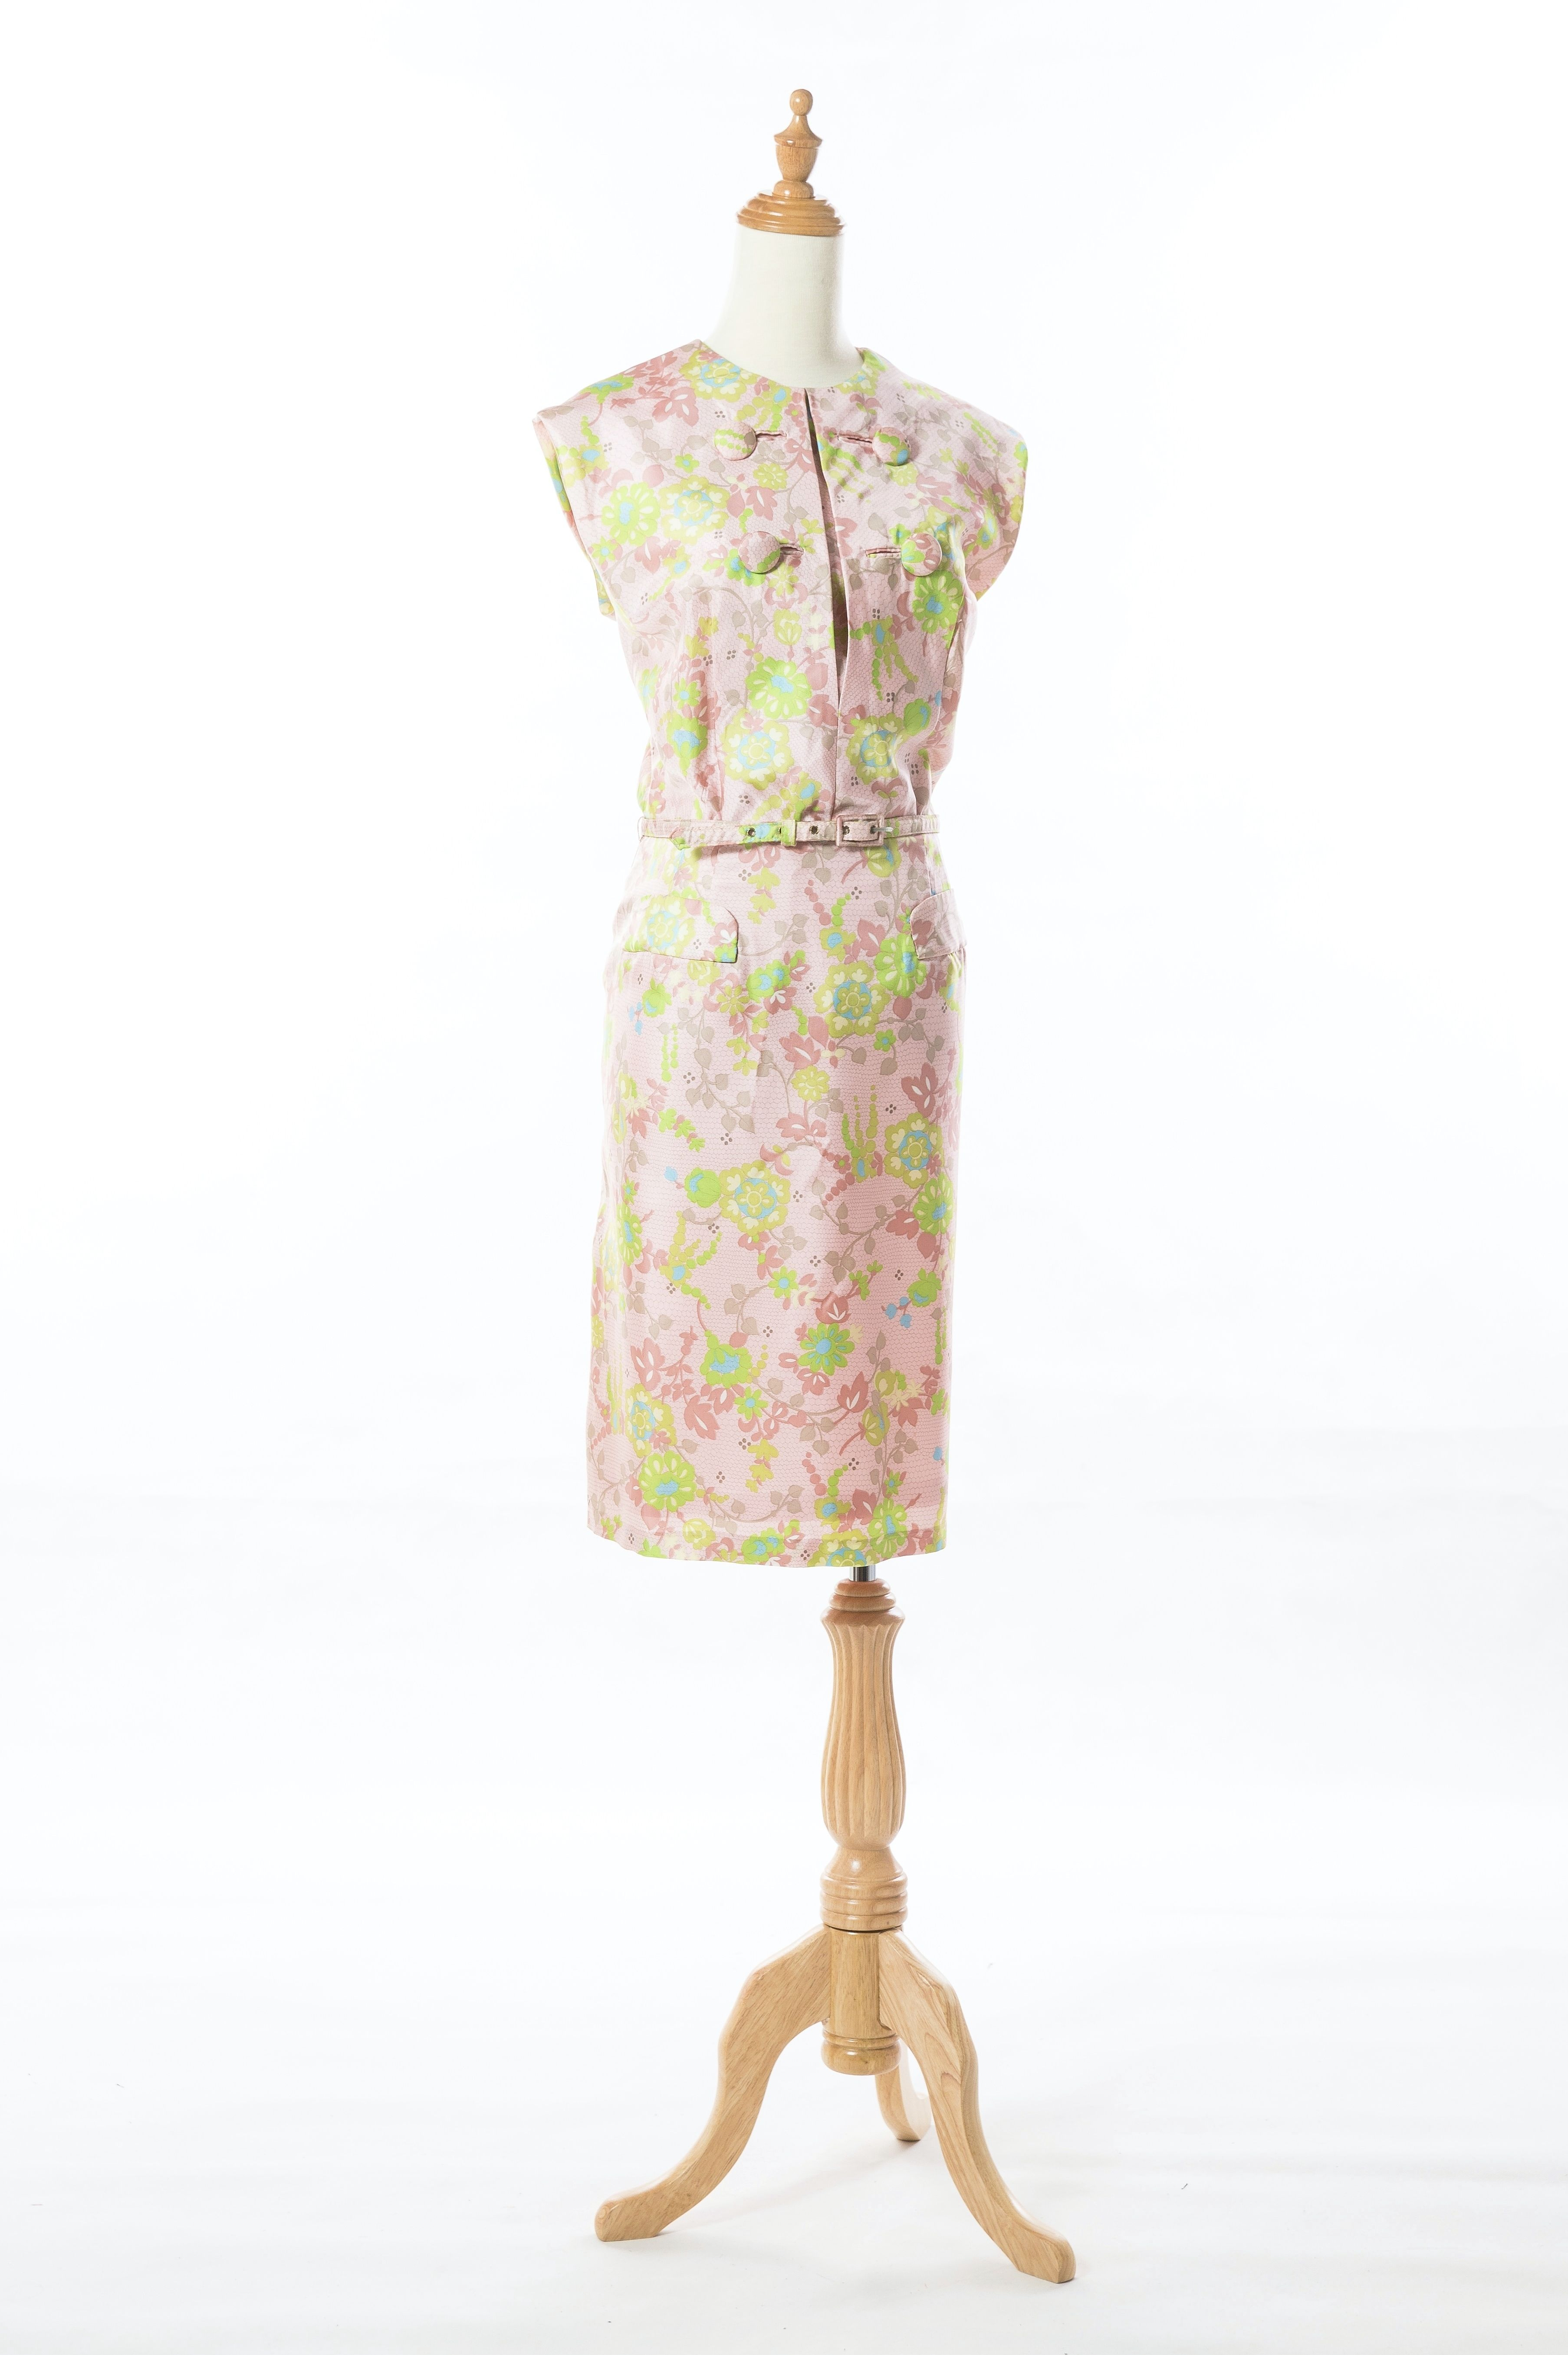 ba32248d77e 1960s Floral Pastel Pink Asian Inspired Cocktail Dress